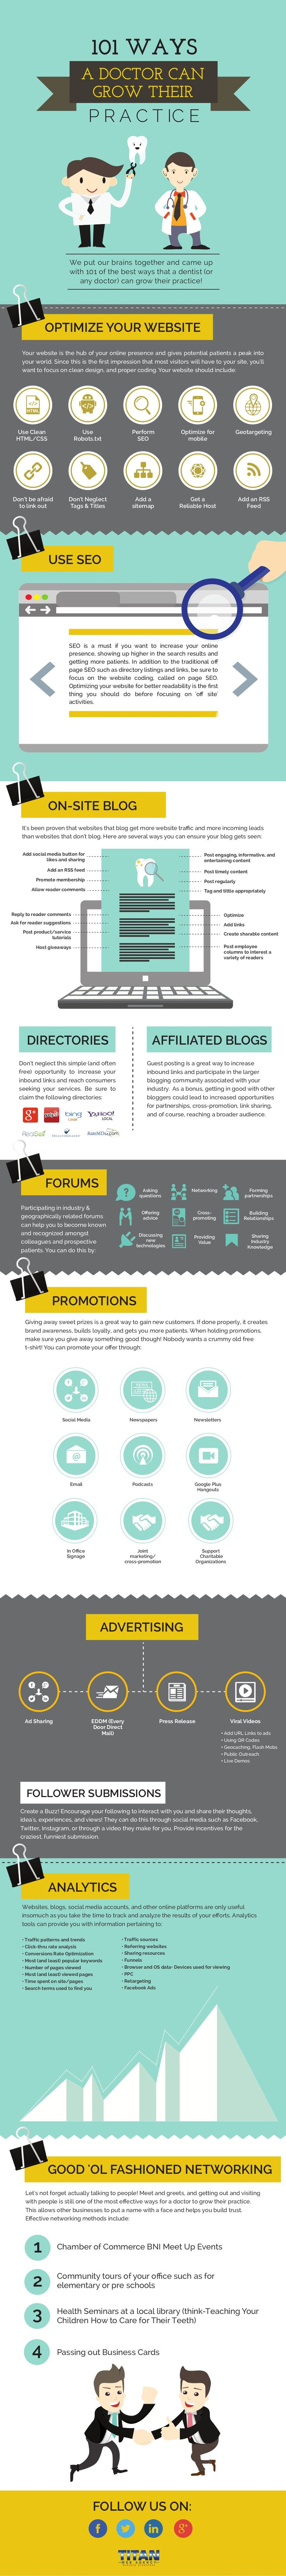 101 Ways a Doctor Can Grow Their Practice, Infographic by Titan Web Agency via slideshare